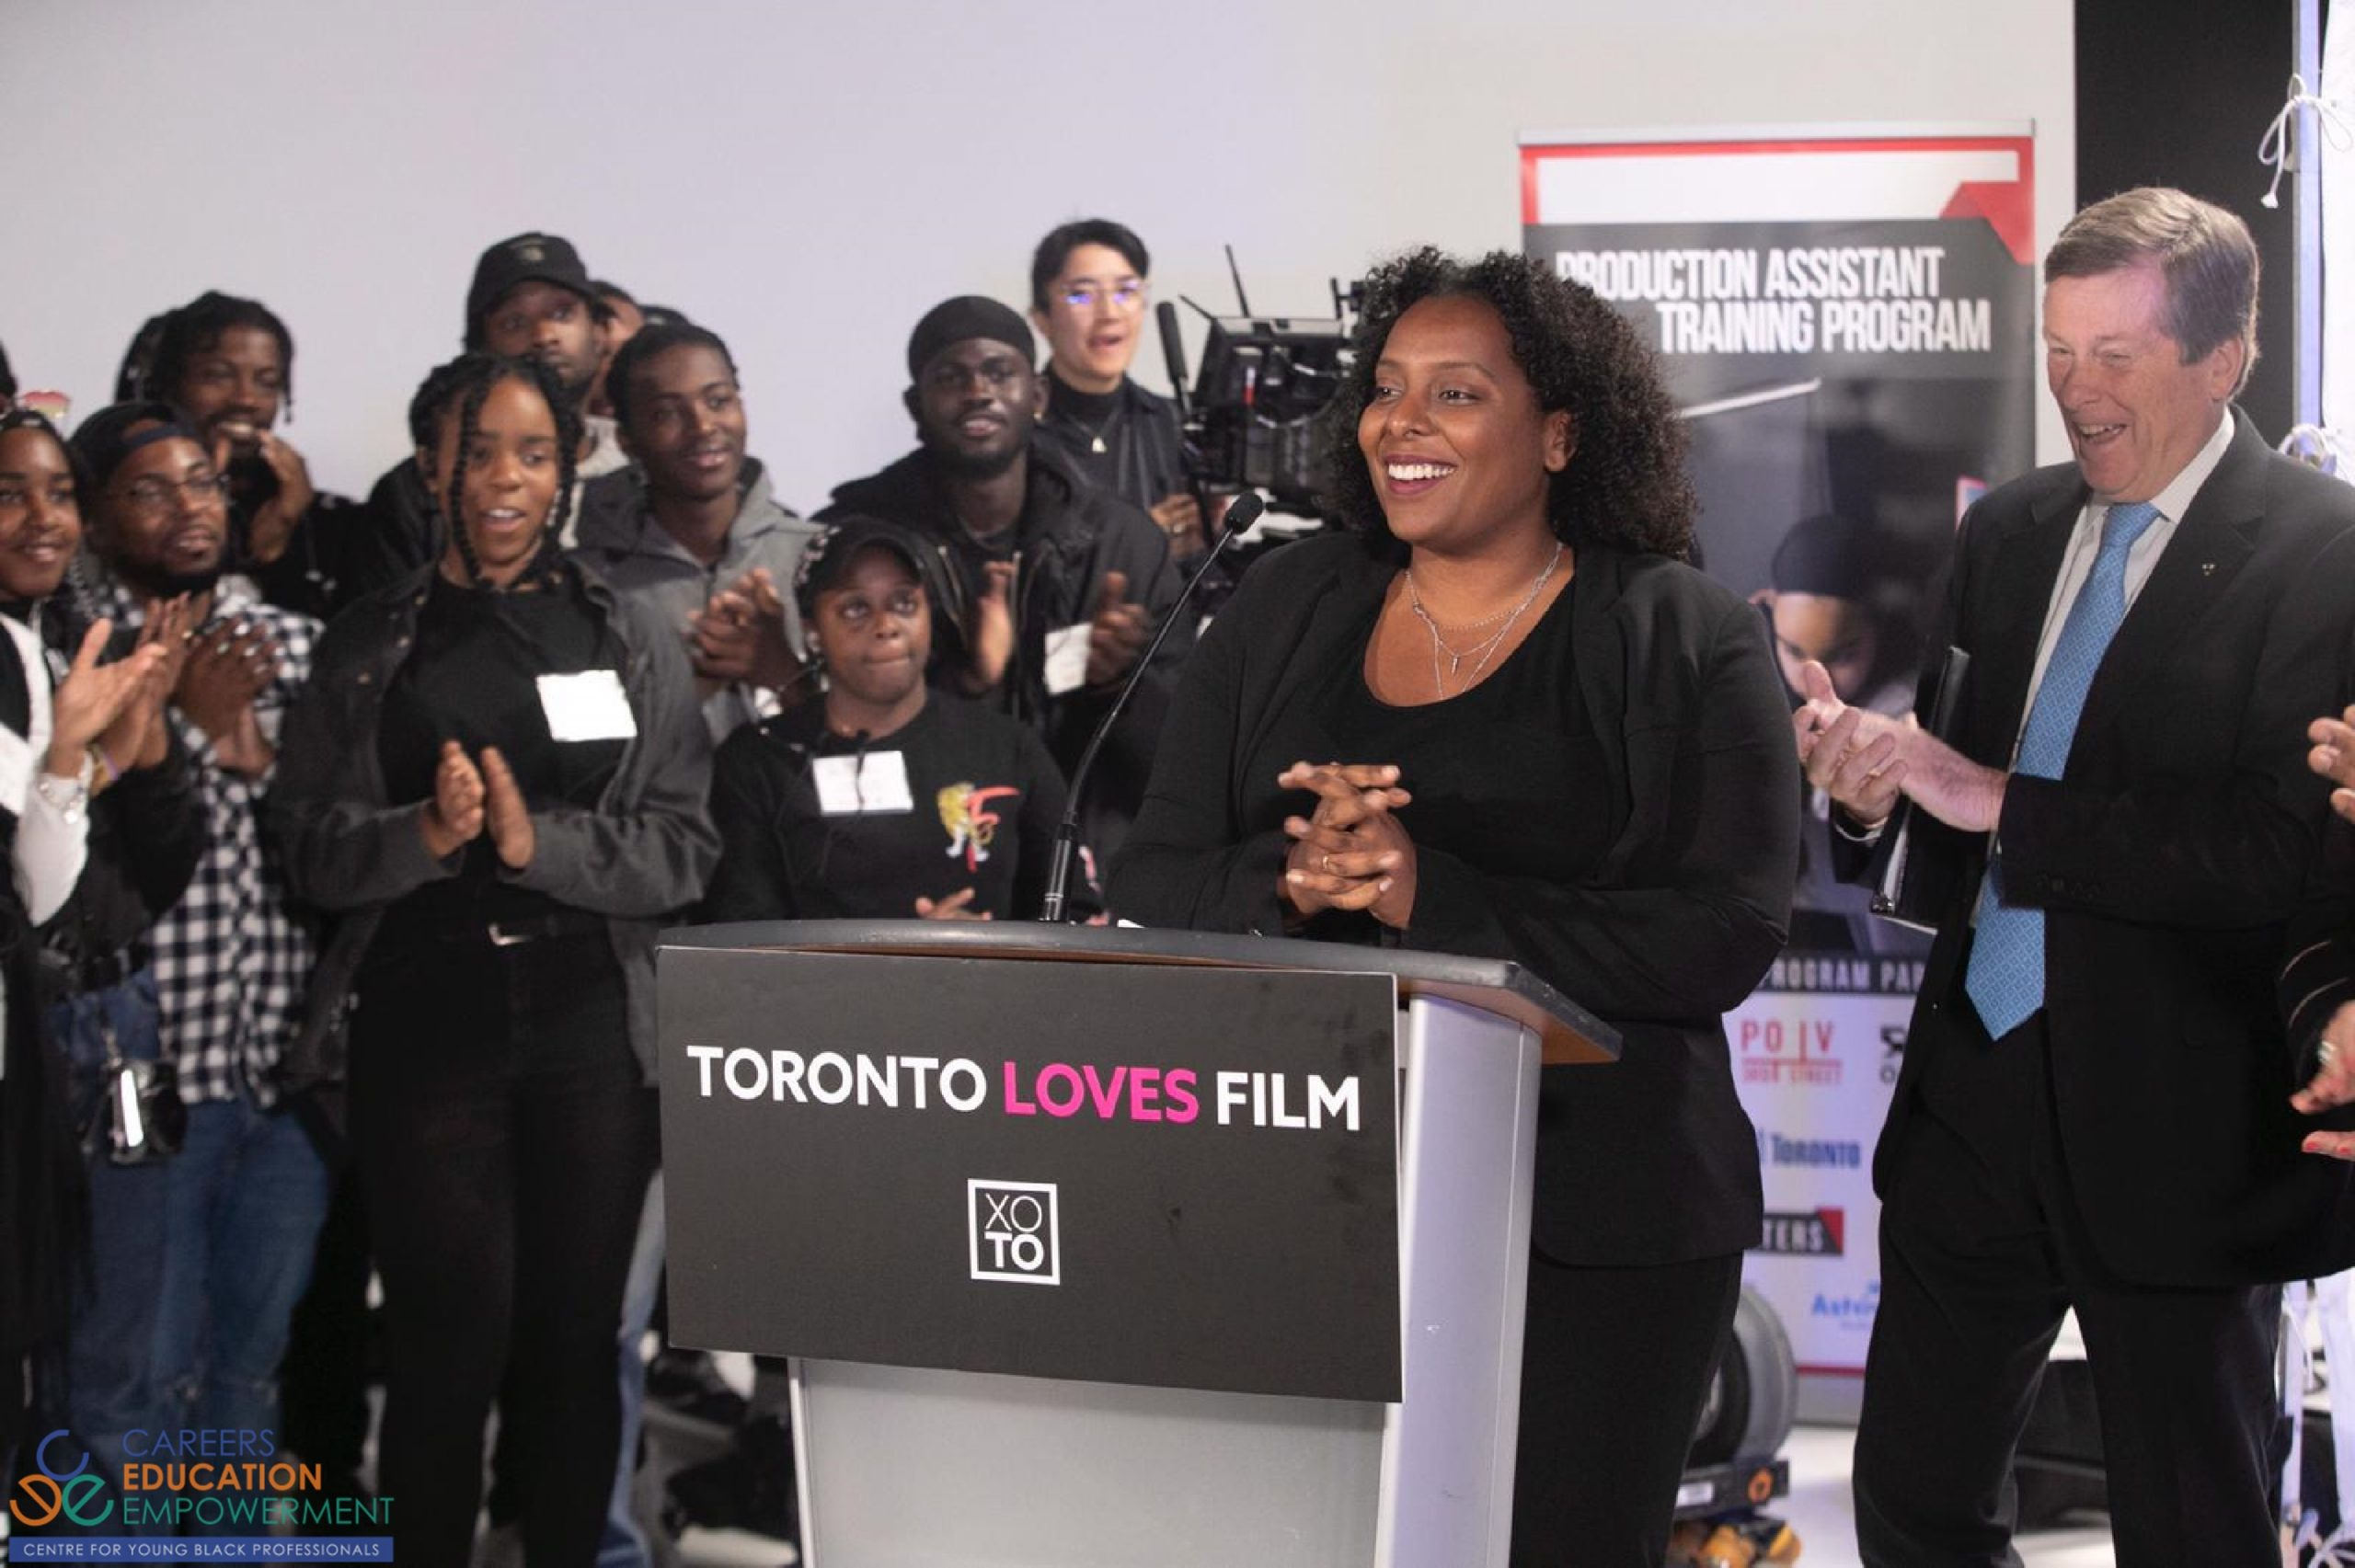 South Asian Bar Association of Toronto Partners with CEE Centre For Young Black Professionals